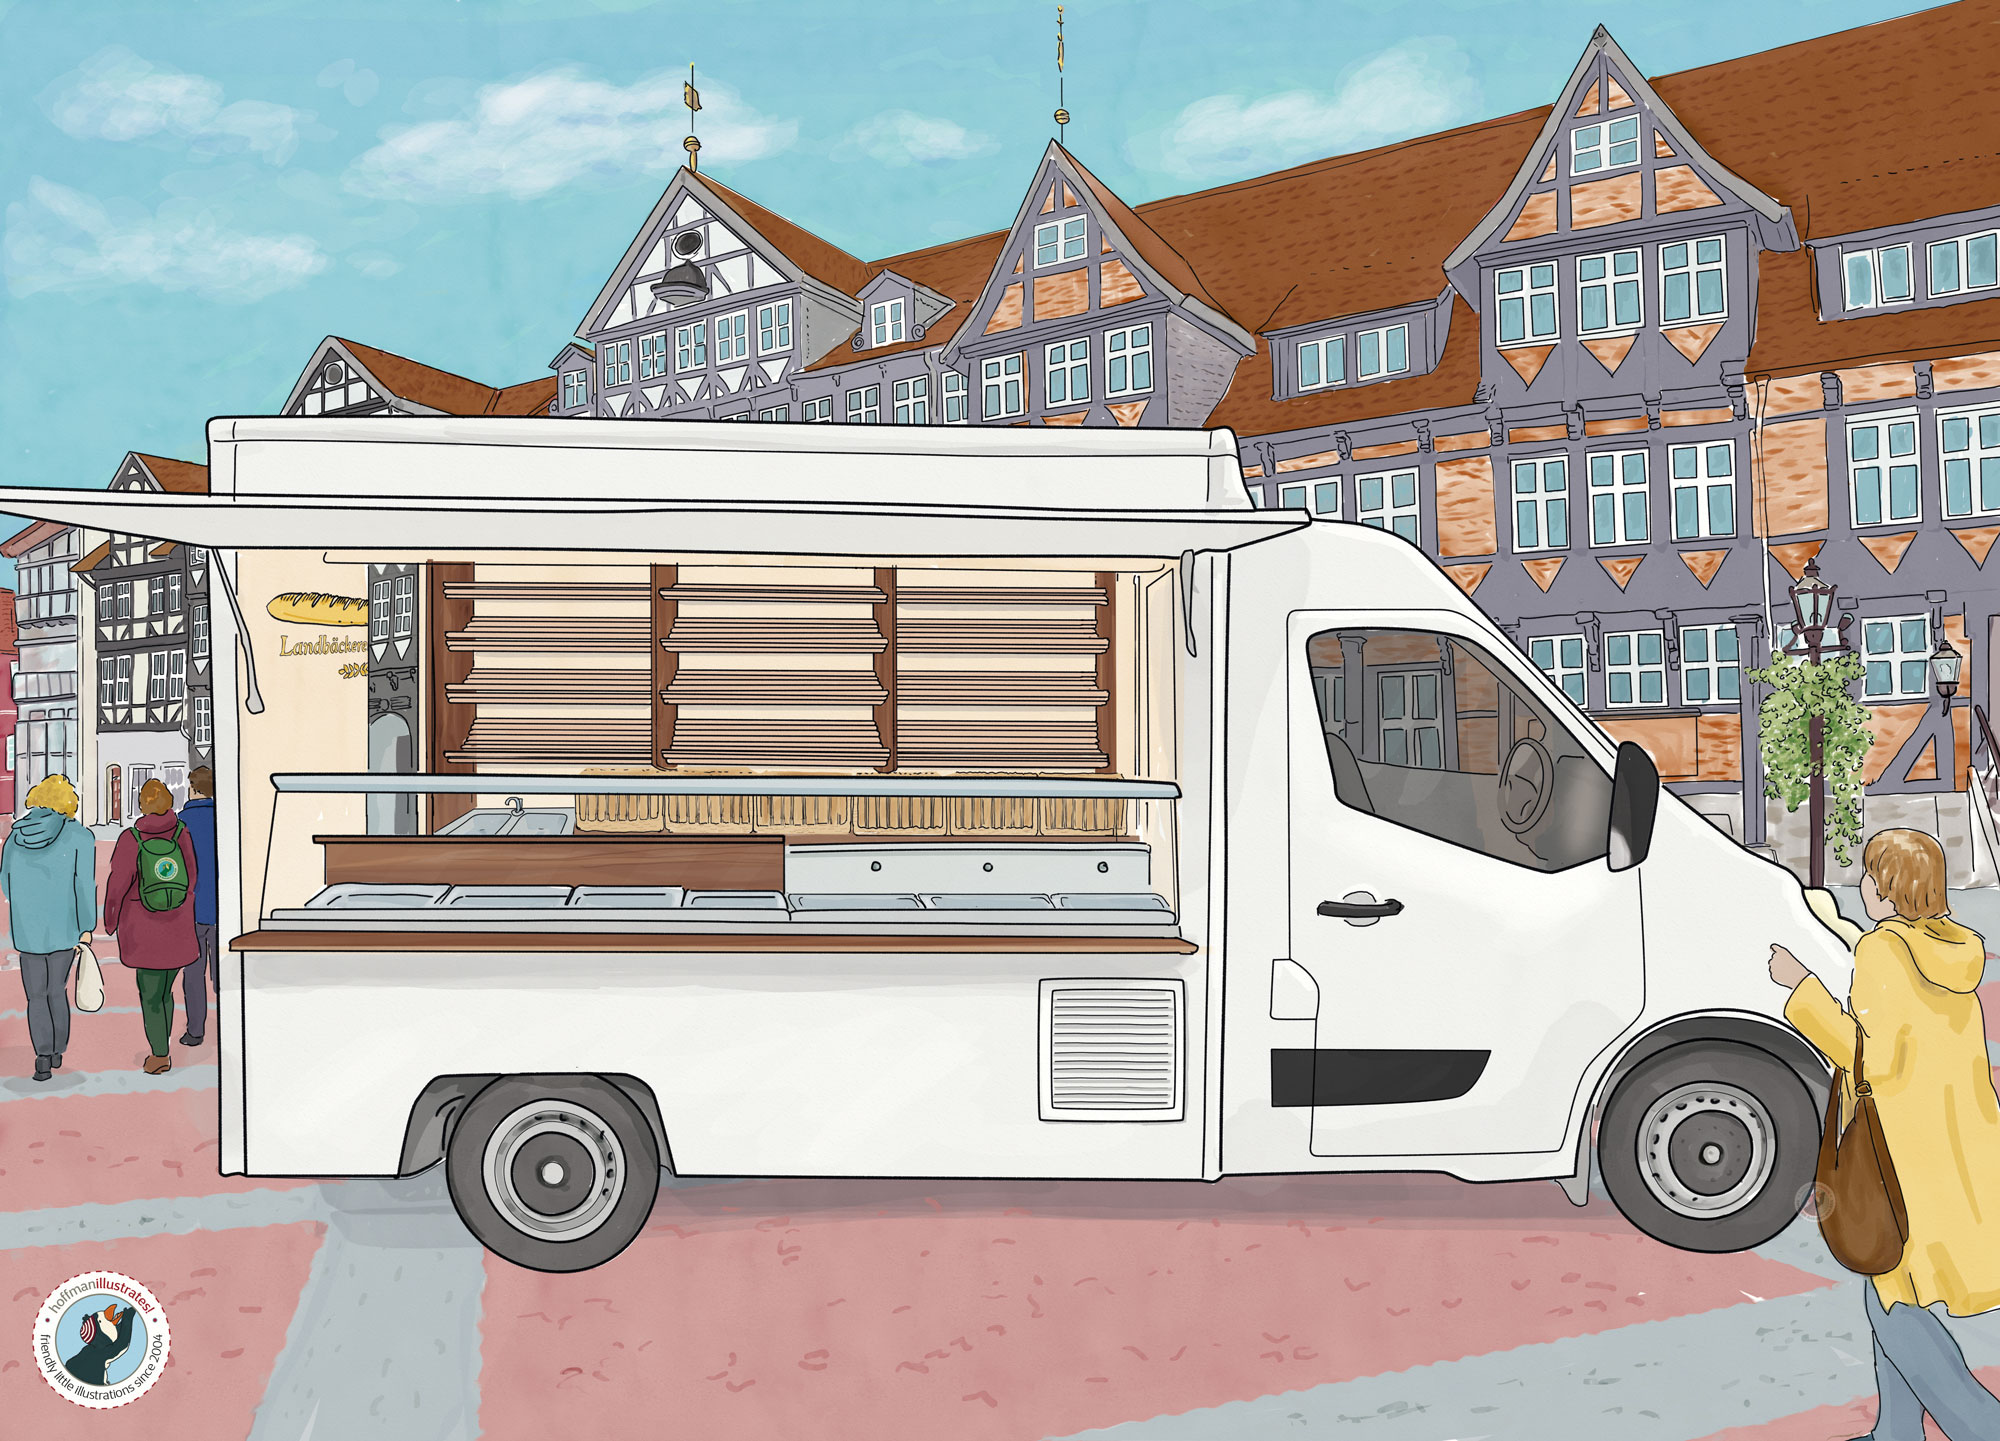 Illustration of a bakery truck Borco Hohns